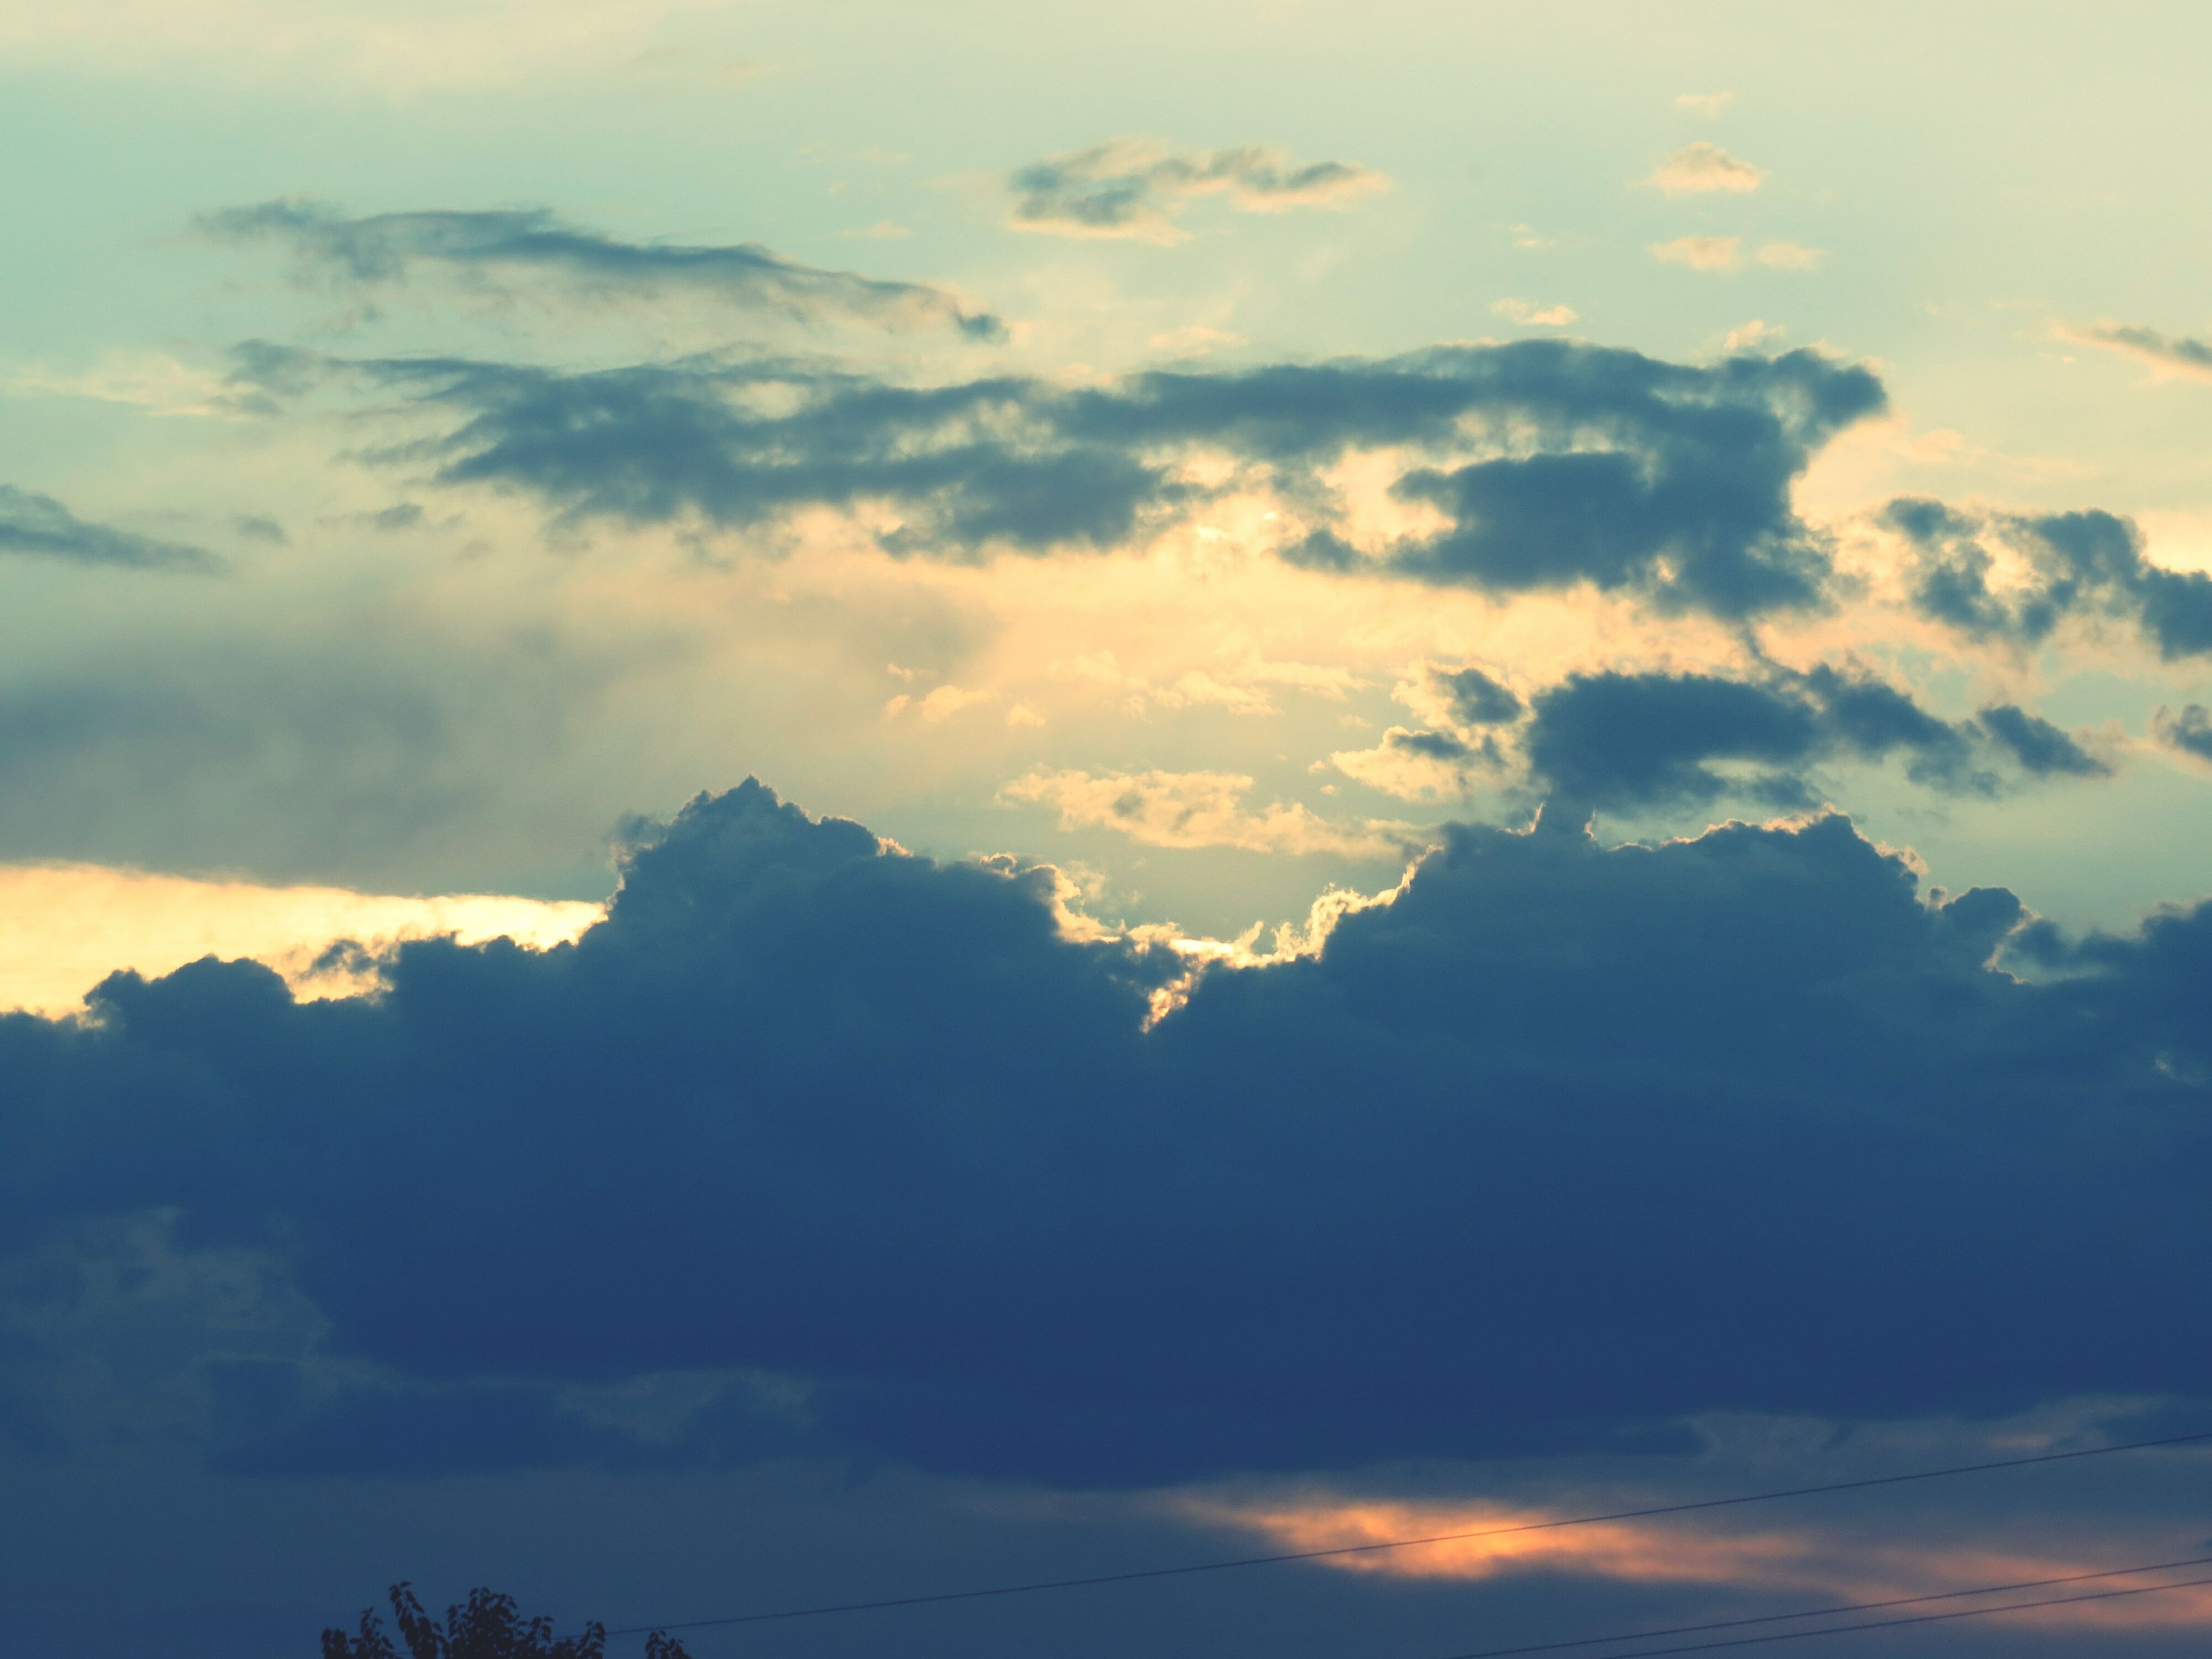 sky, cloud - sky, scenics, beauty in nature, tranquility, tranquil scene, low angle view, cloudy, nature, cloudscape, sunset, sky only, idyllic, cloud, weather, majestic, dramatic sky, silhouette, outdoors, no people